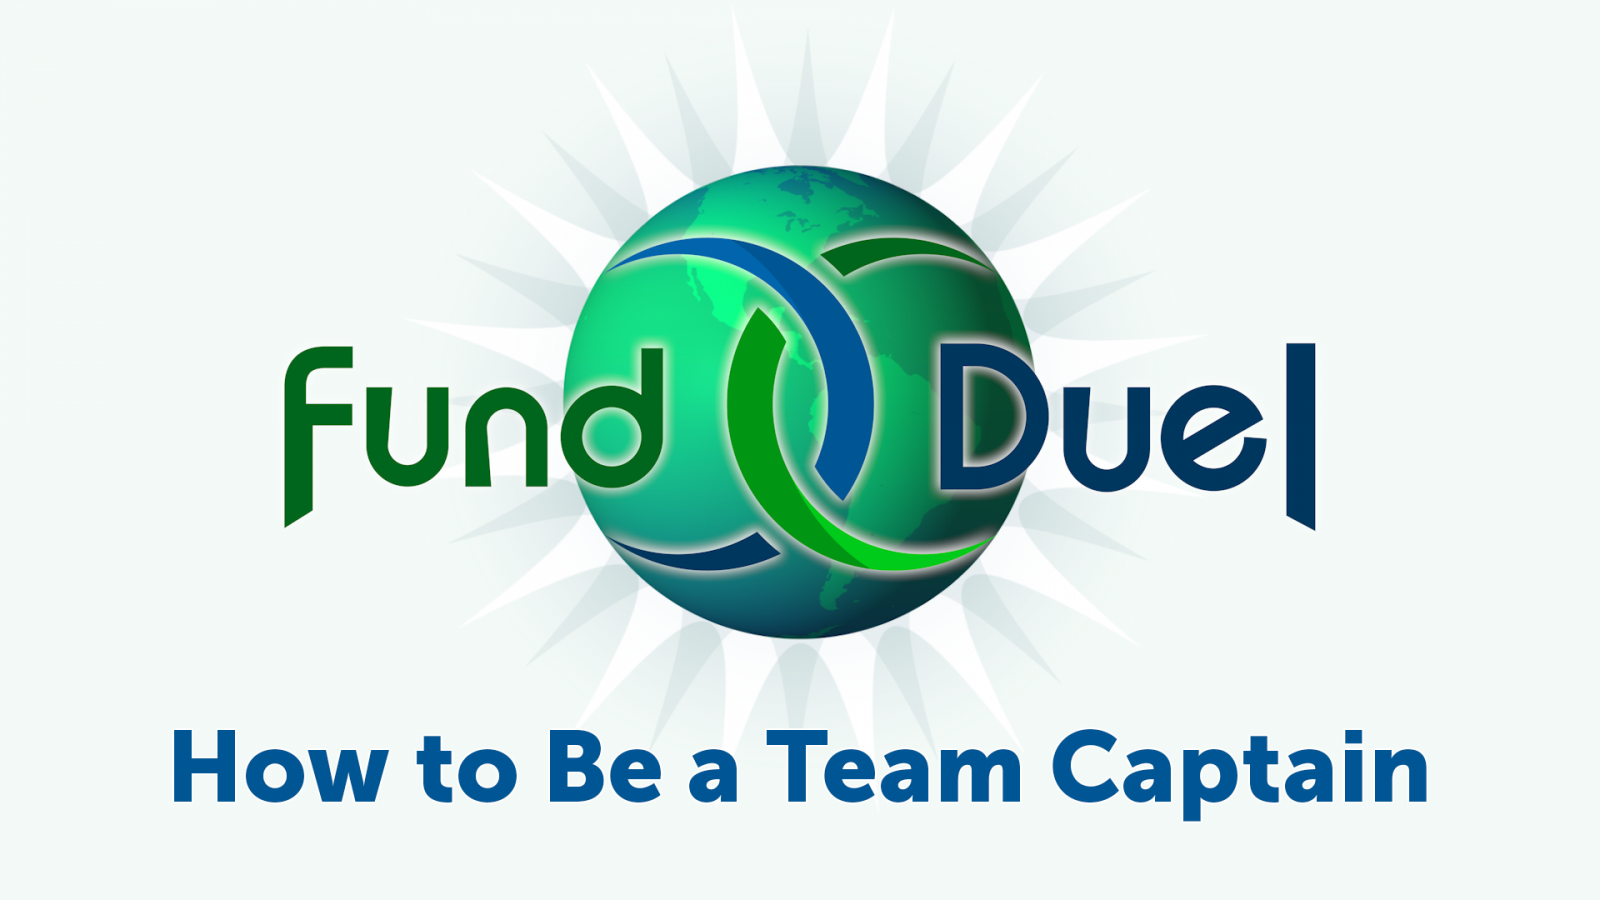 Fund Duel - How to Be a Team Captain